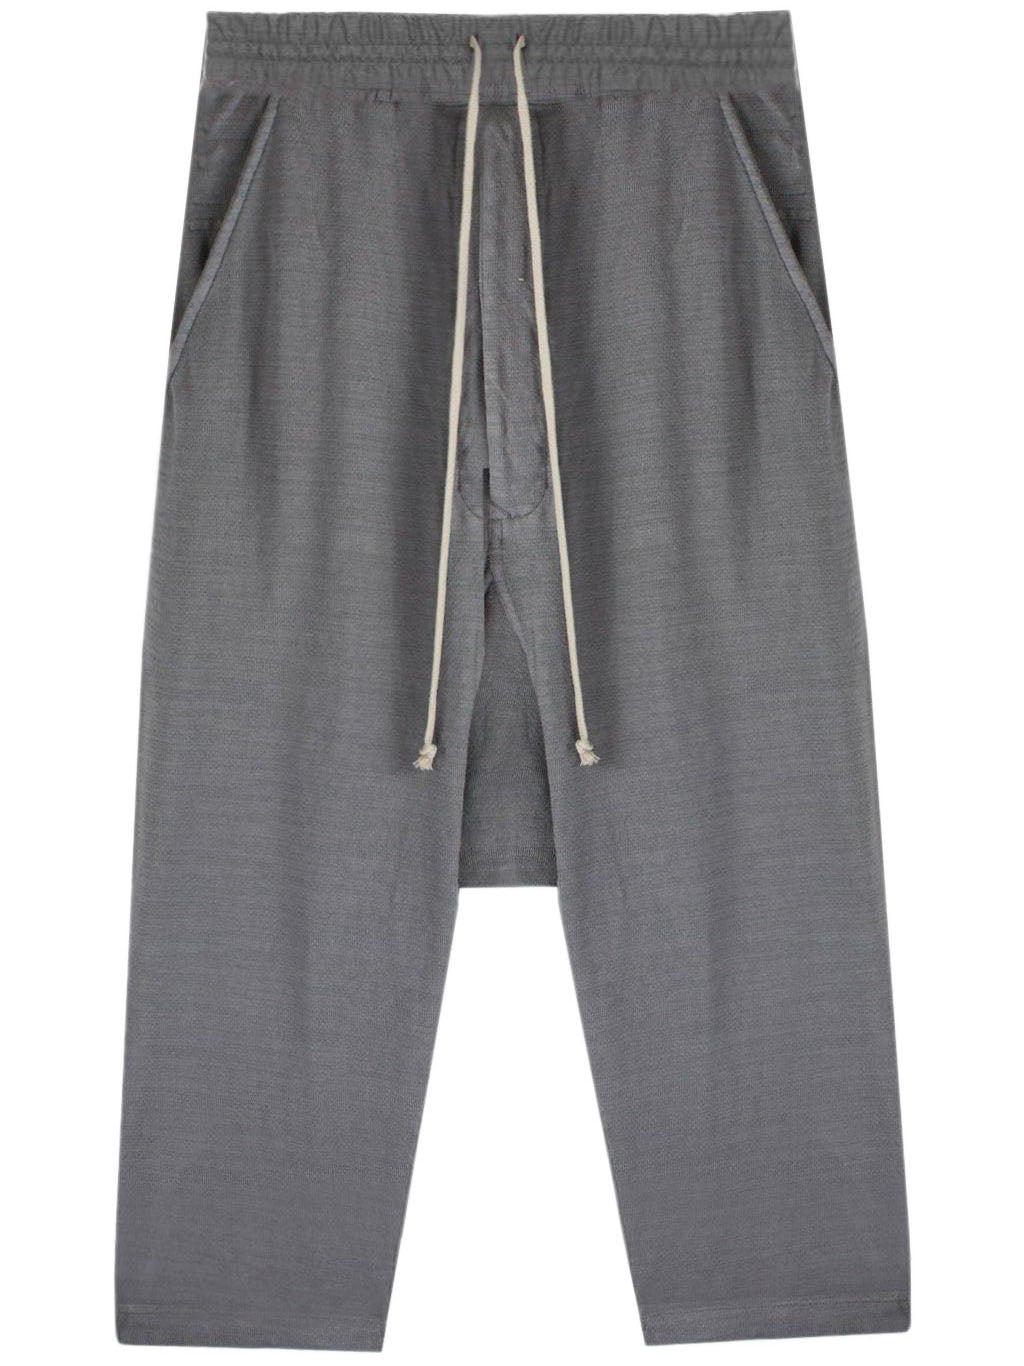 Grey Cropped Drawstring Pants